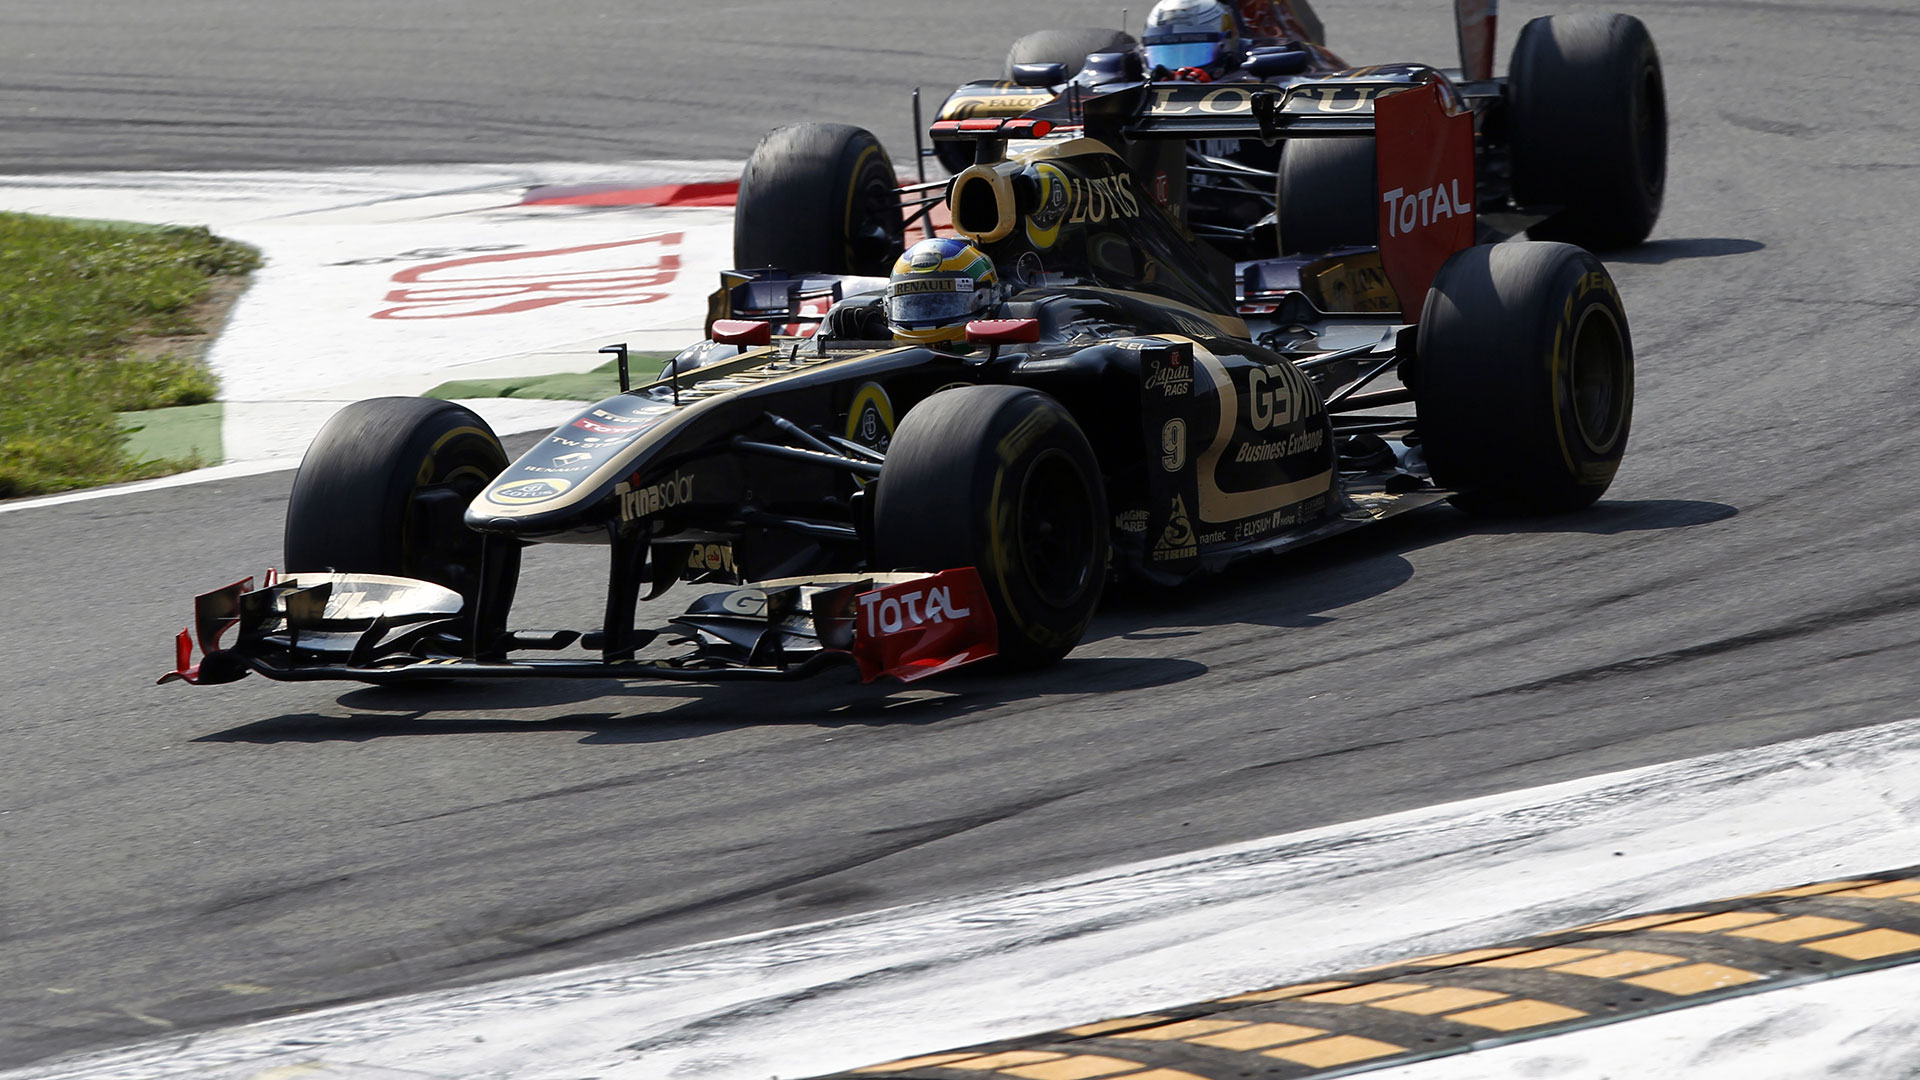 HD Wallpapers 2011 Formula 1 Grand Prix Of Italy